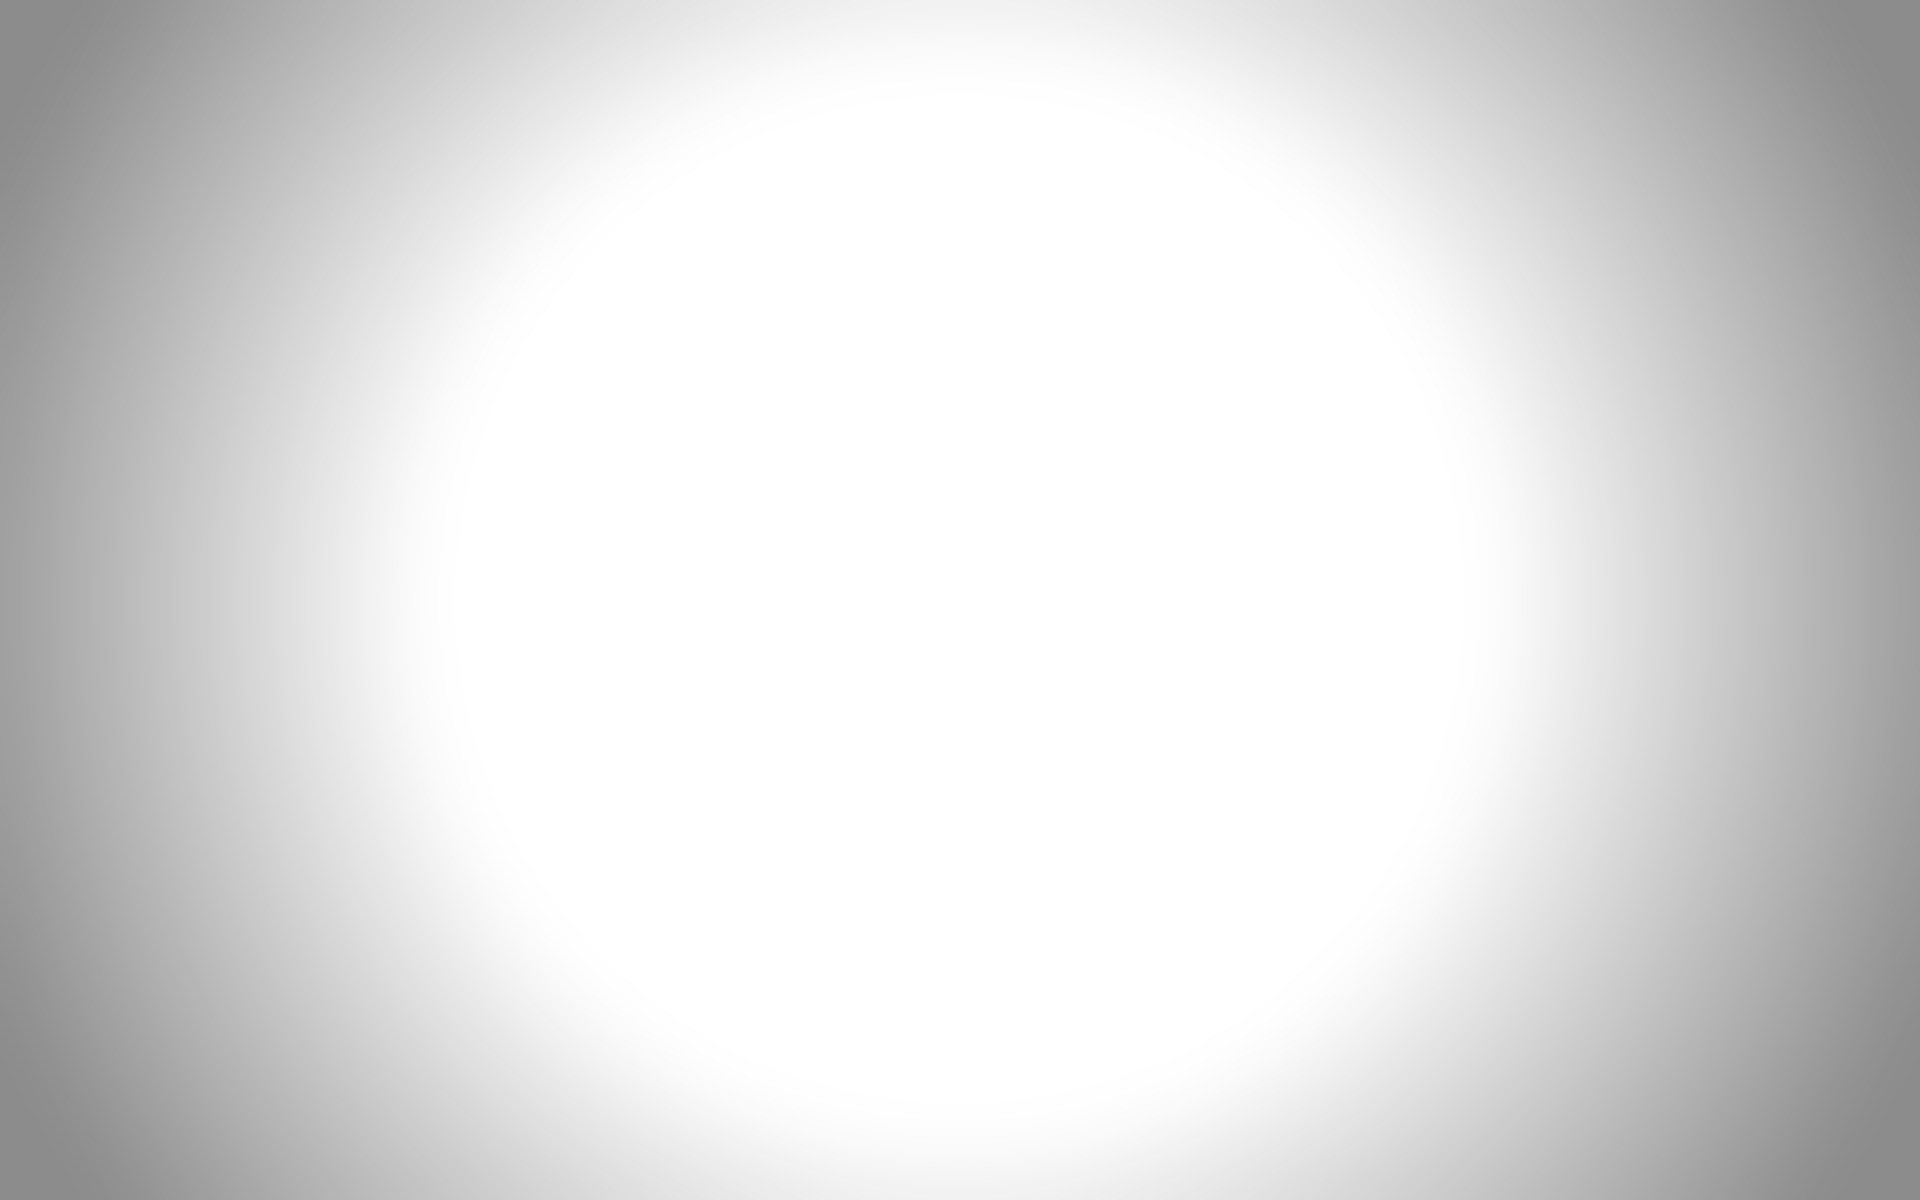 Plain White Background Images Hd 1080p